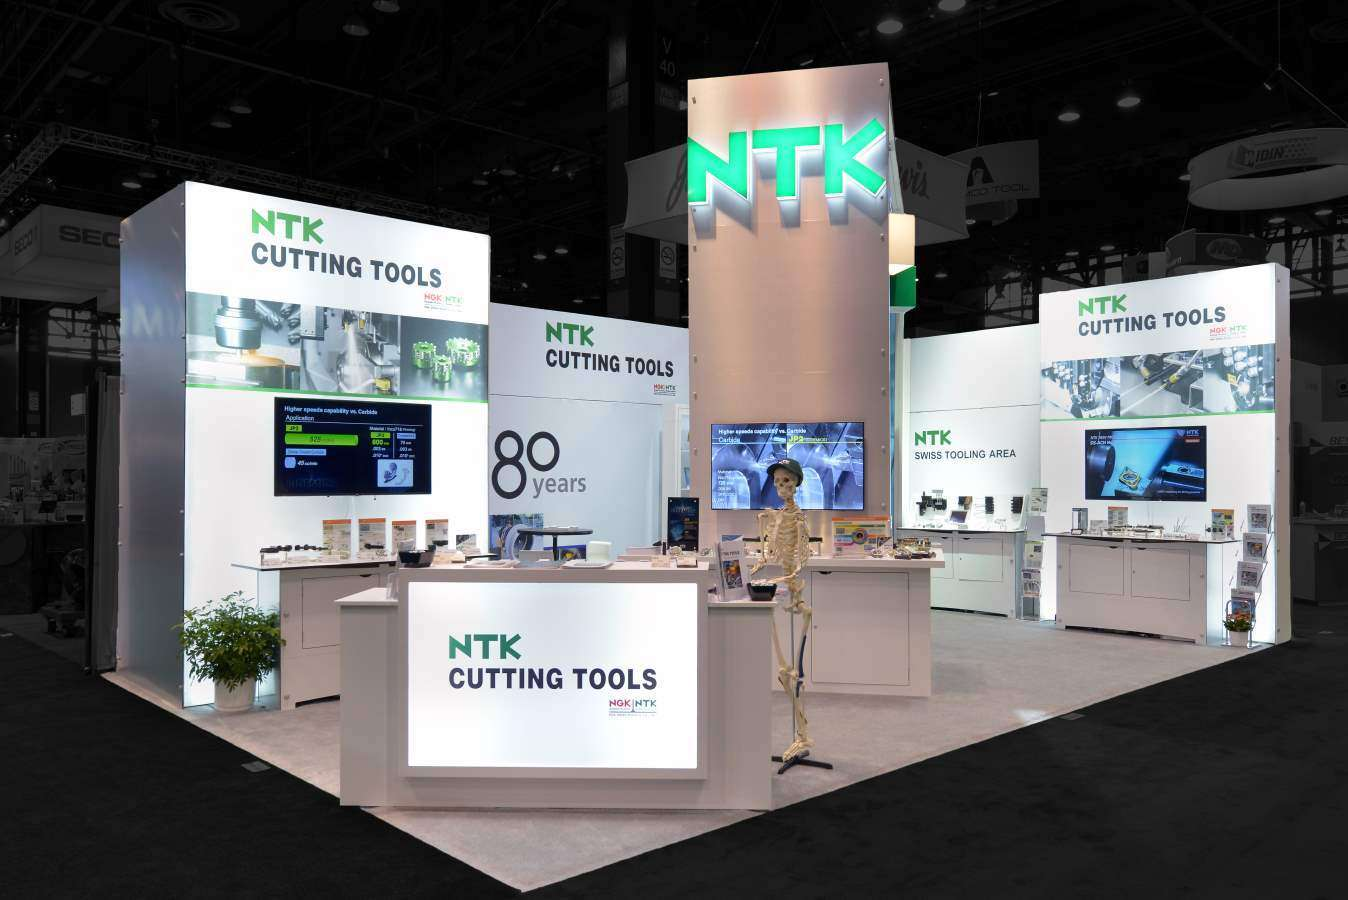 20x30 trade show rental booth imts chicago - Booth Design Ideas